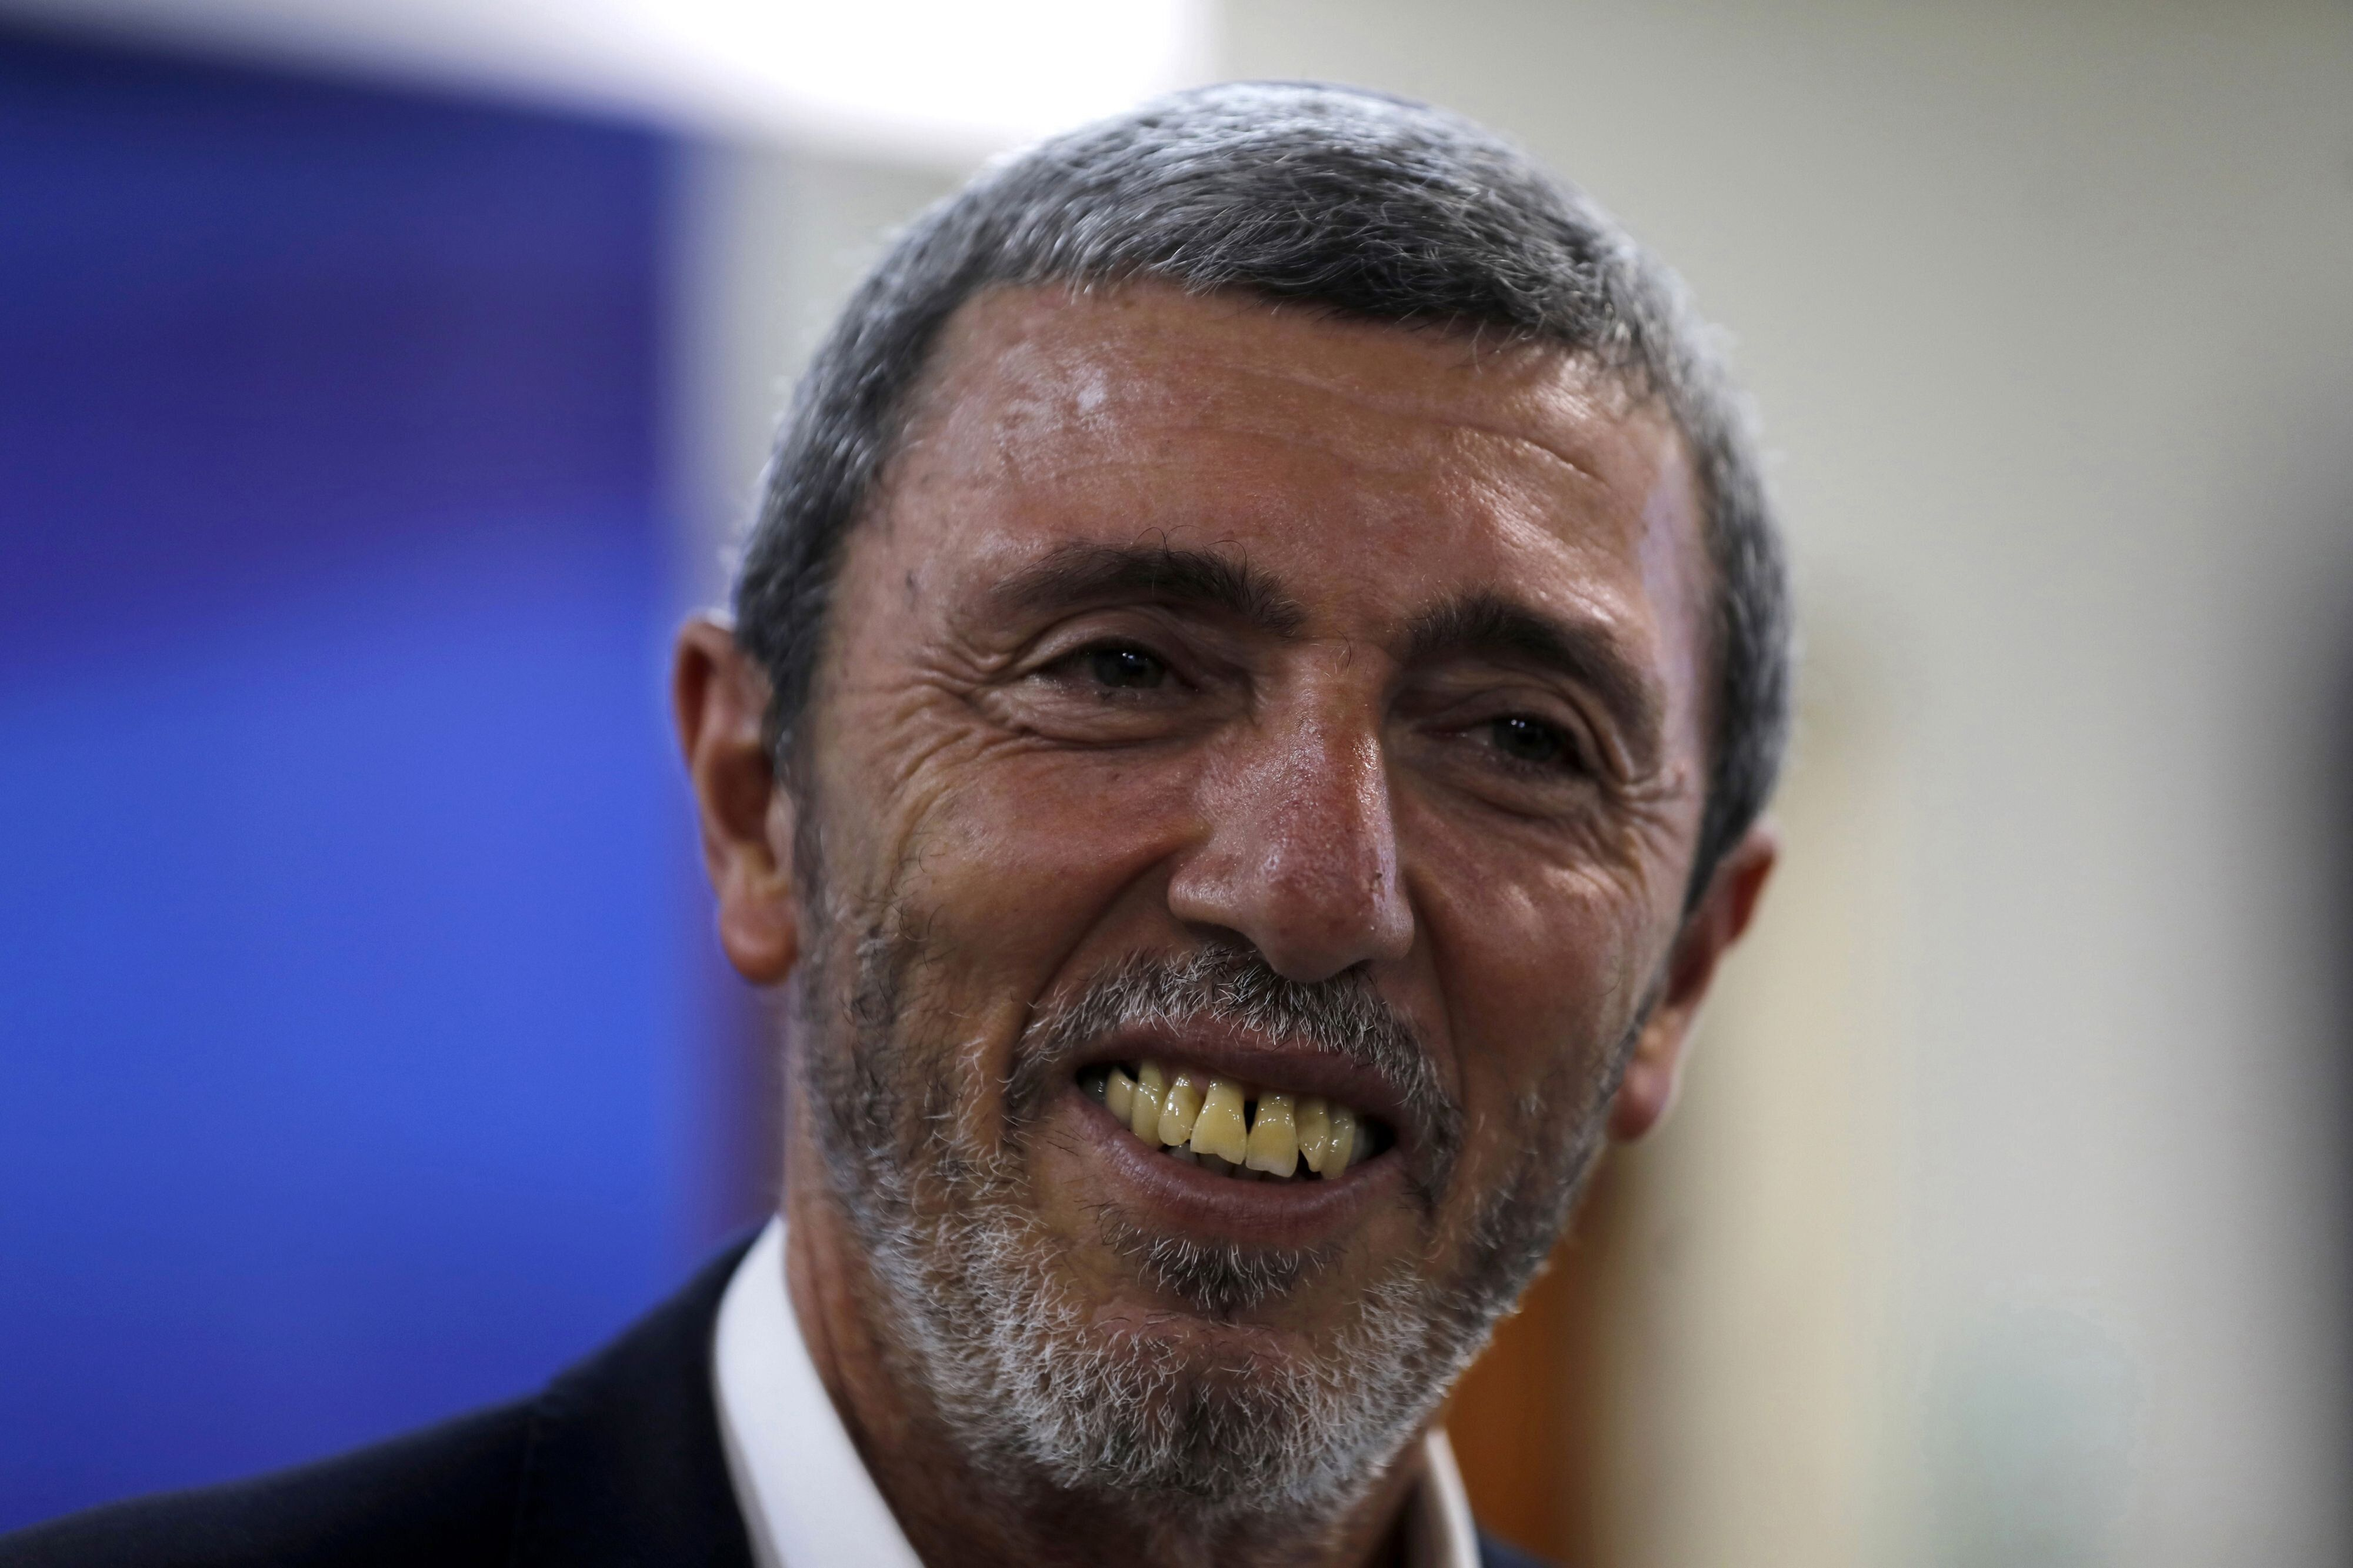 Israel's Education Minister Apologizes For 'Gay Conversion' Therapy Remarks